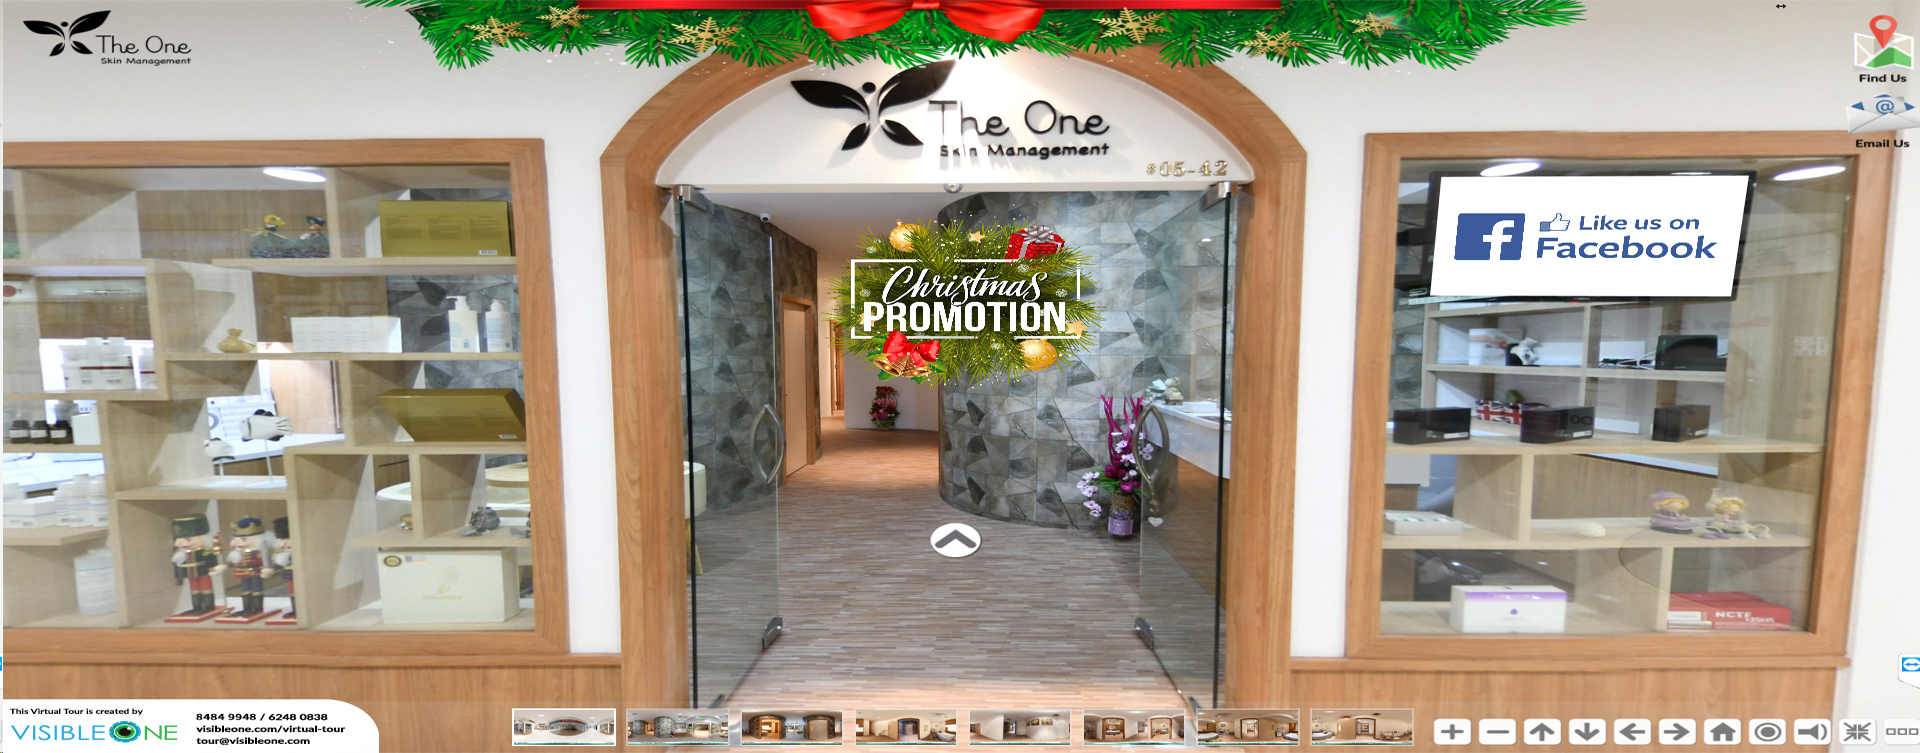 The One Virtual Tour